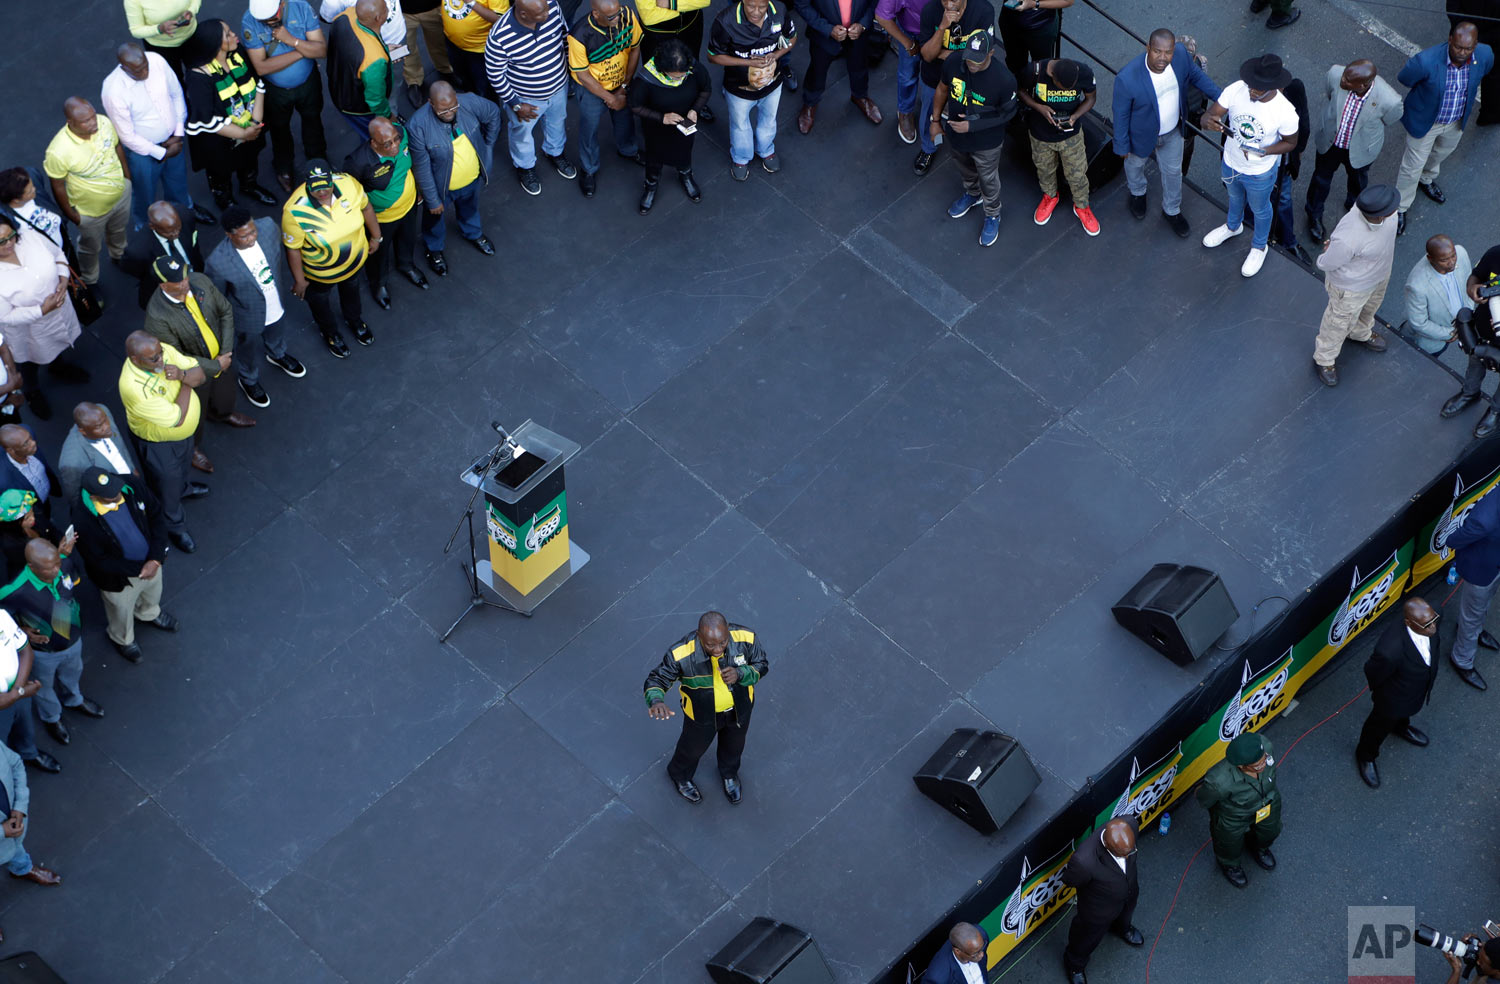 African National Congress (ANC), president Cyril Ramaphosa, addresses supporters during their celebration in Johannesburg, South Africa, May 12, 2019. (AP Photo/Themba Hadebe)